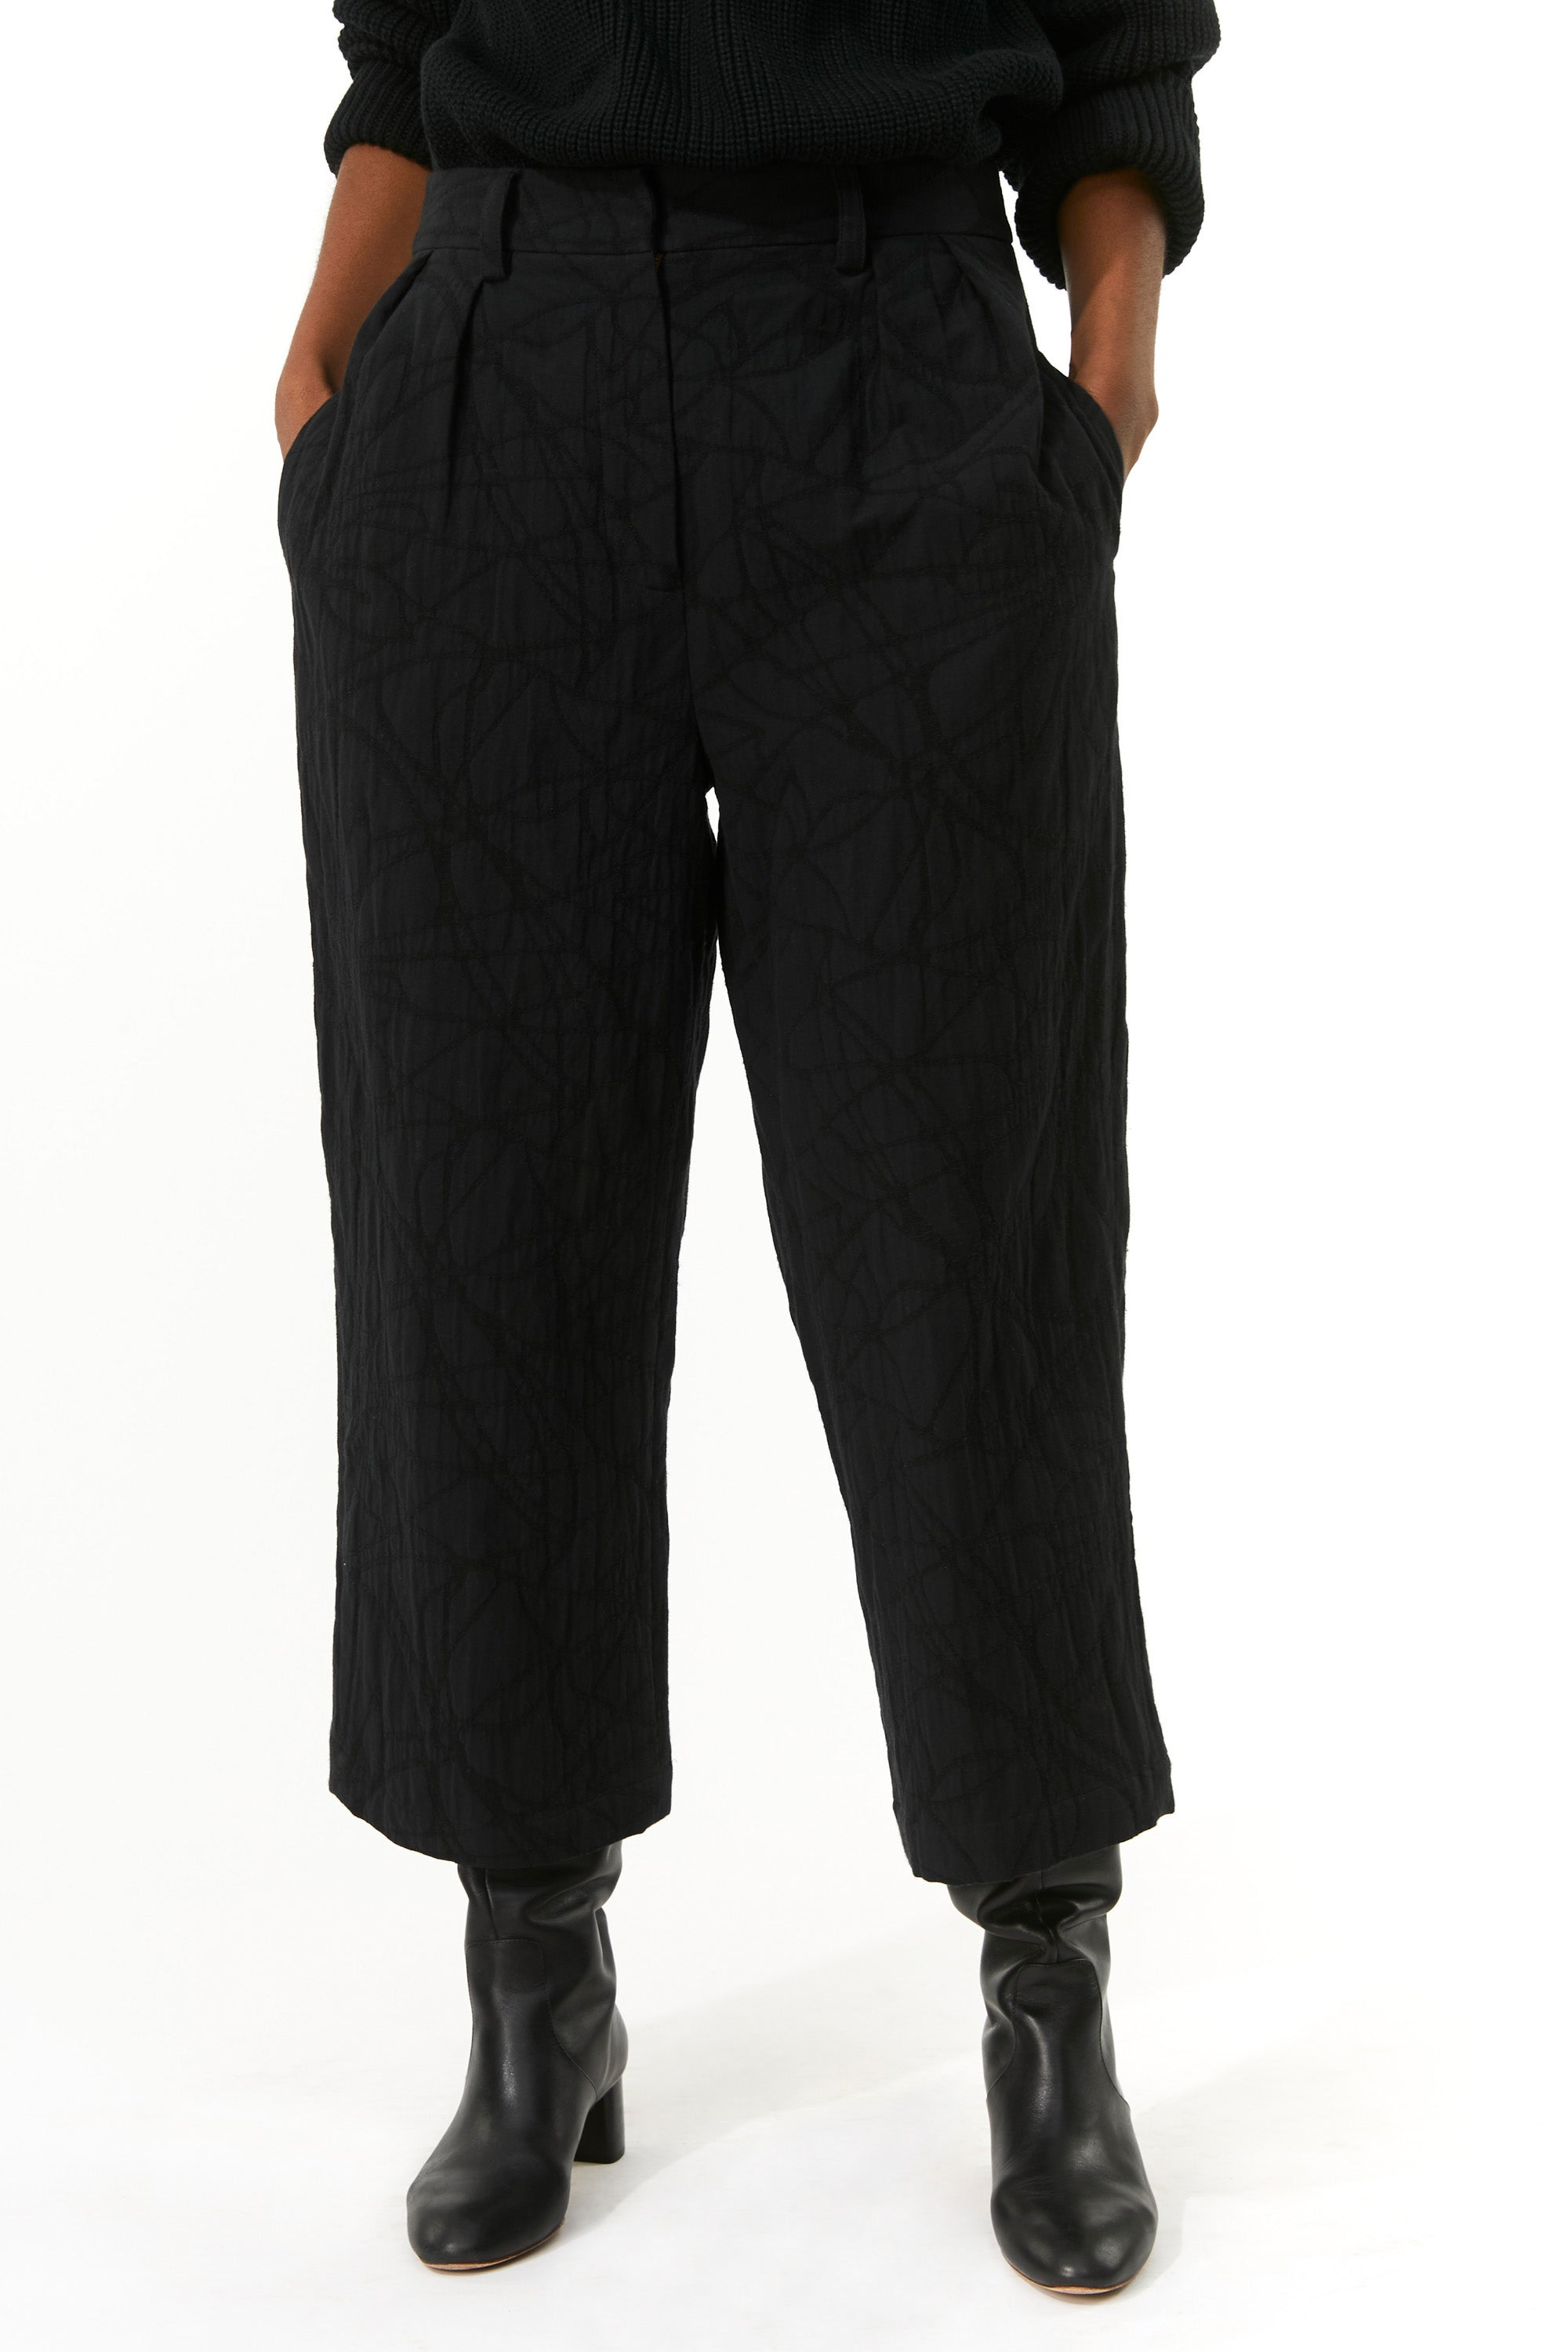 Mara Hoffman Black Sandra Pant in organic cotton and linen (front detail)